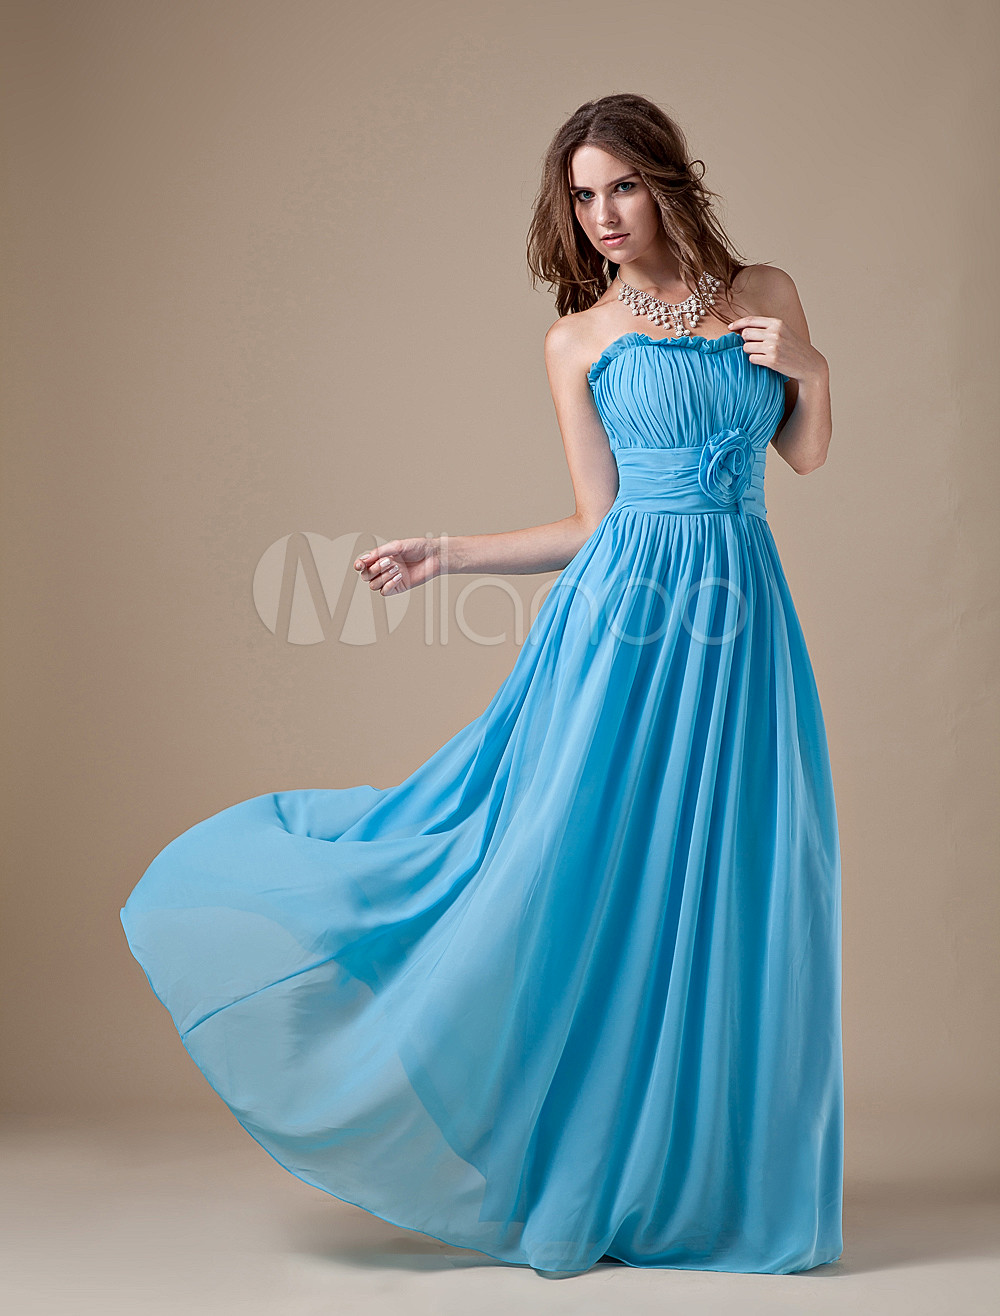 Sweet Caesious Chiffon A-line Strapless Bridesmaid Dress